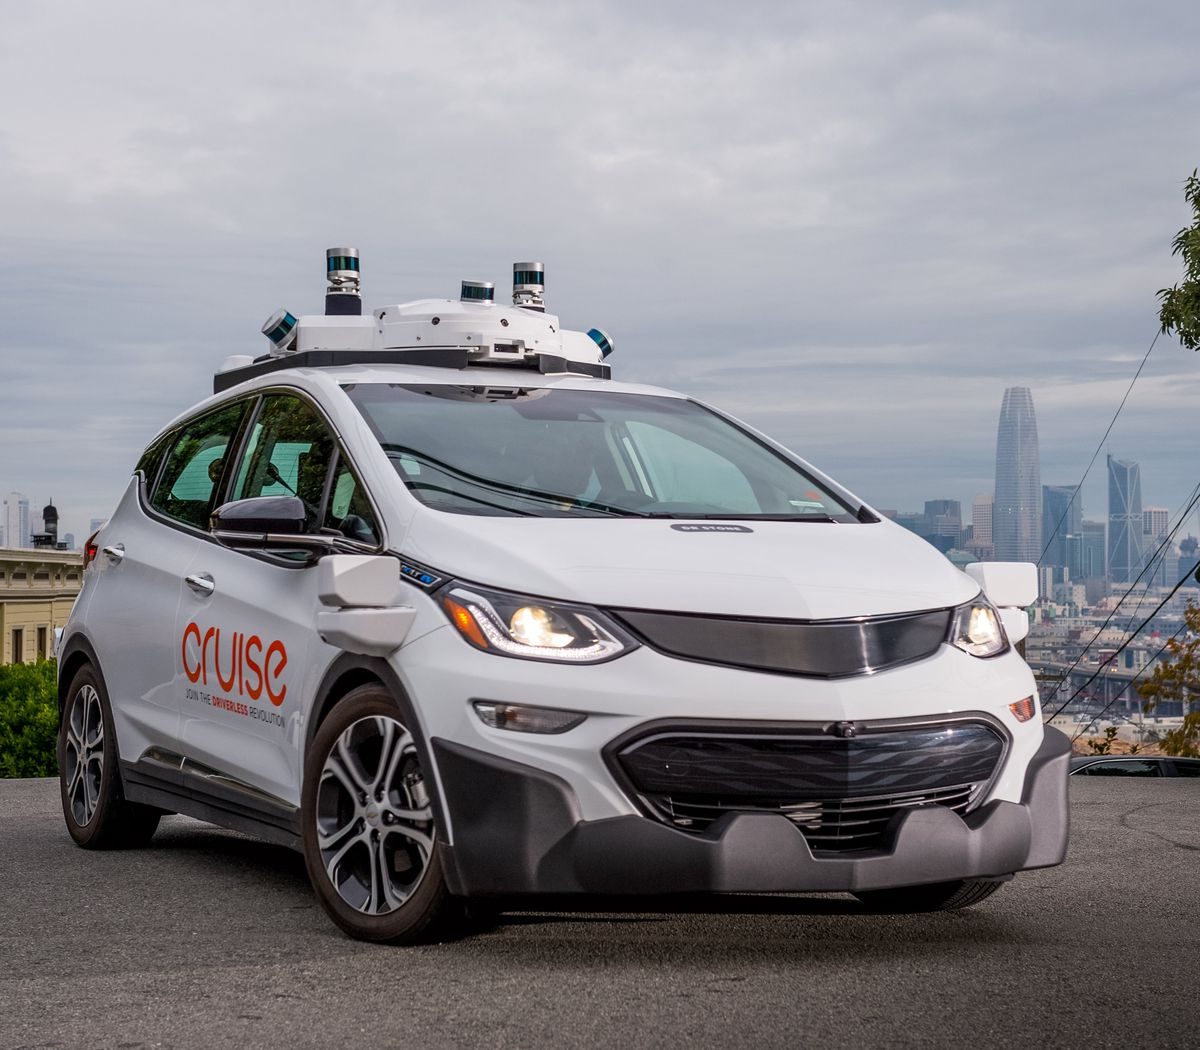 Cruise self-driving test vehicle navigates the urban streets of San Francisco, California. (Photo by Karl Nielsen)